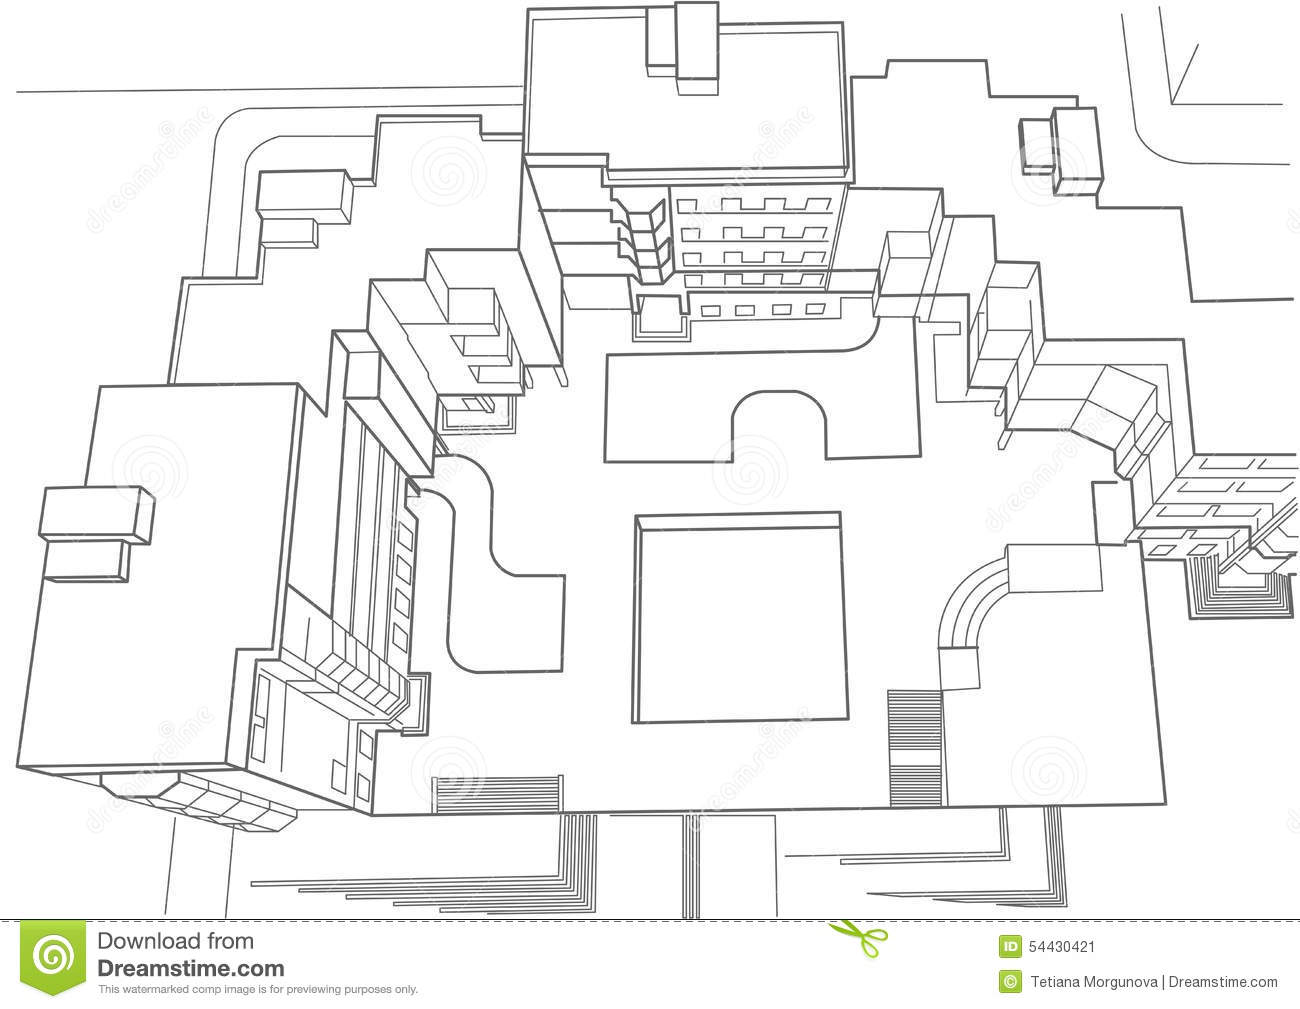 Architectural Sketch Of Multi Story Building Top View Stock Vector